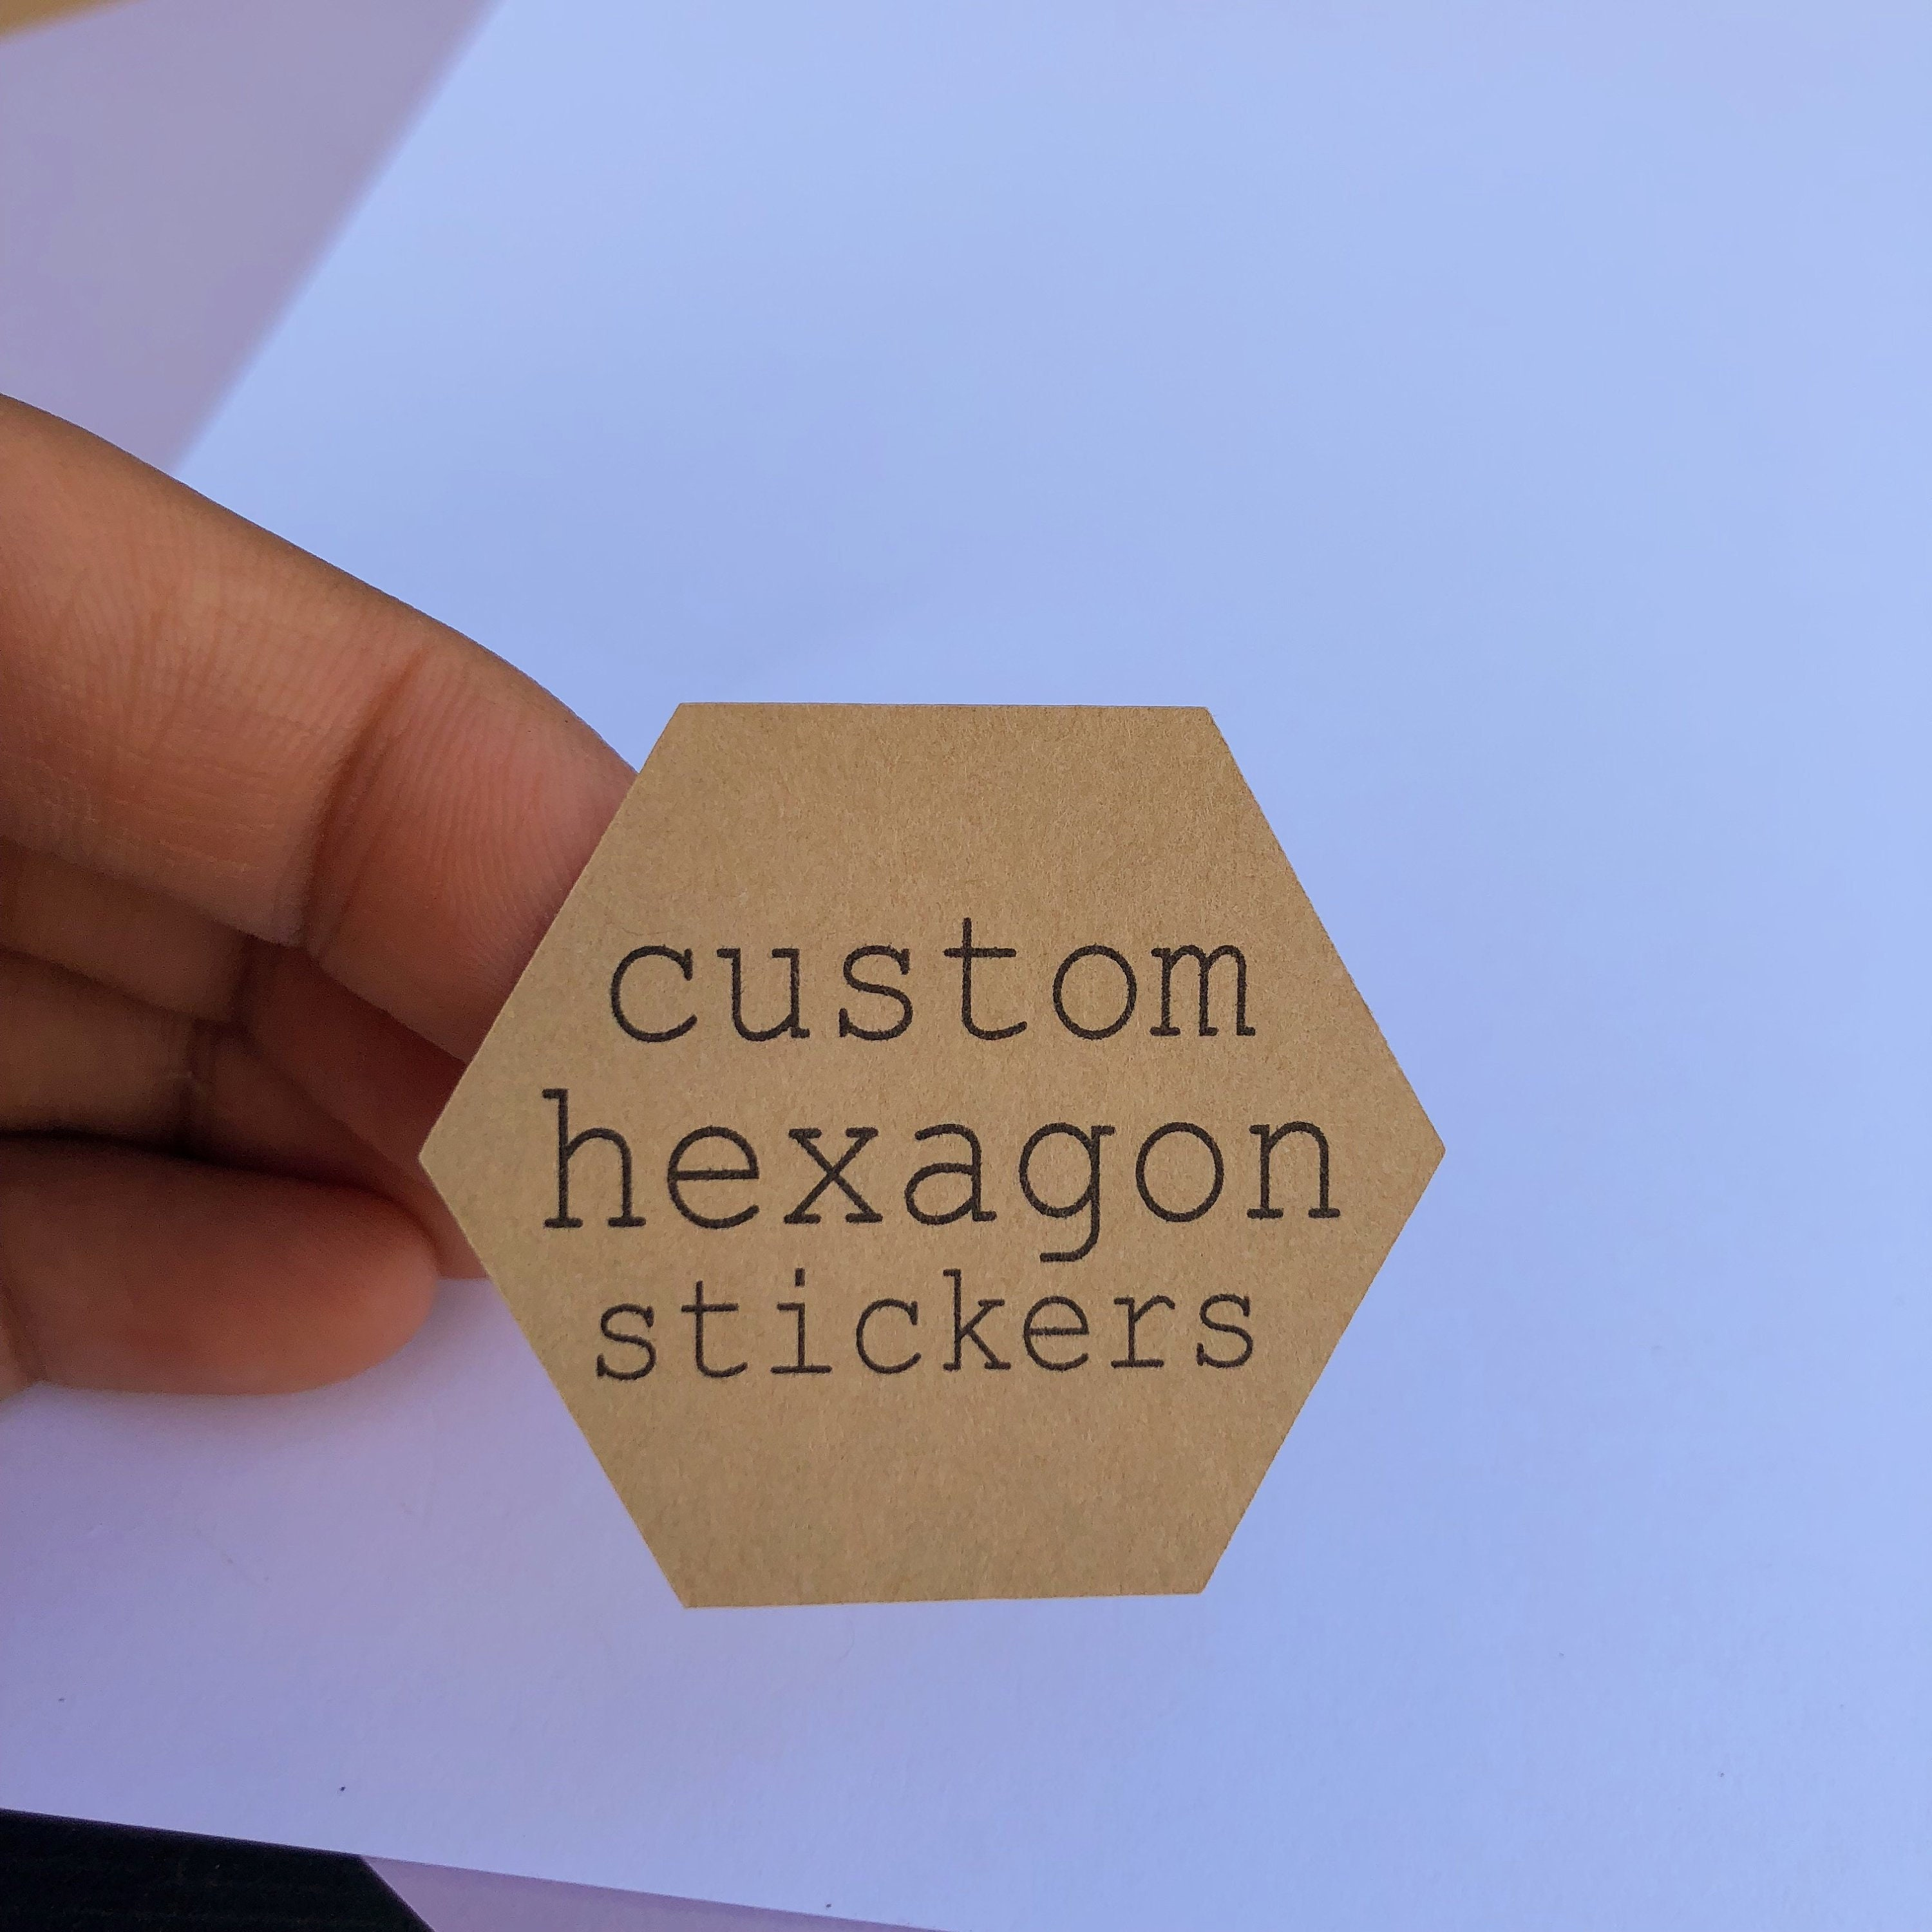 Custom hexagon stickers custom labels hexagon labels custom clear stickers custom stickers logo stickers from 0 75 to 4